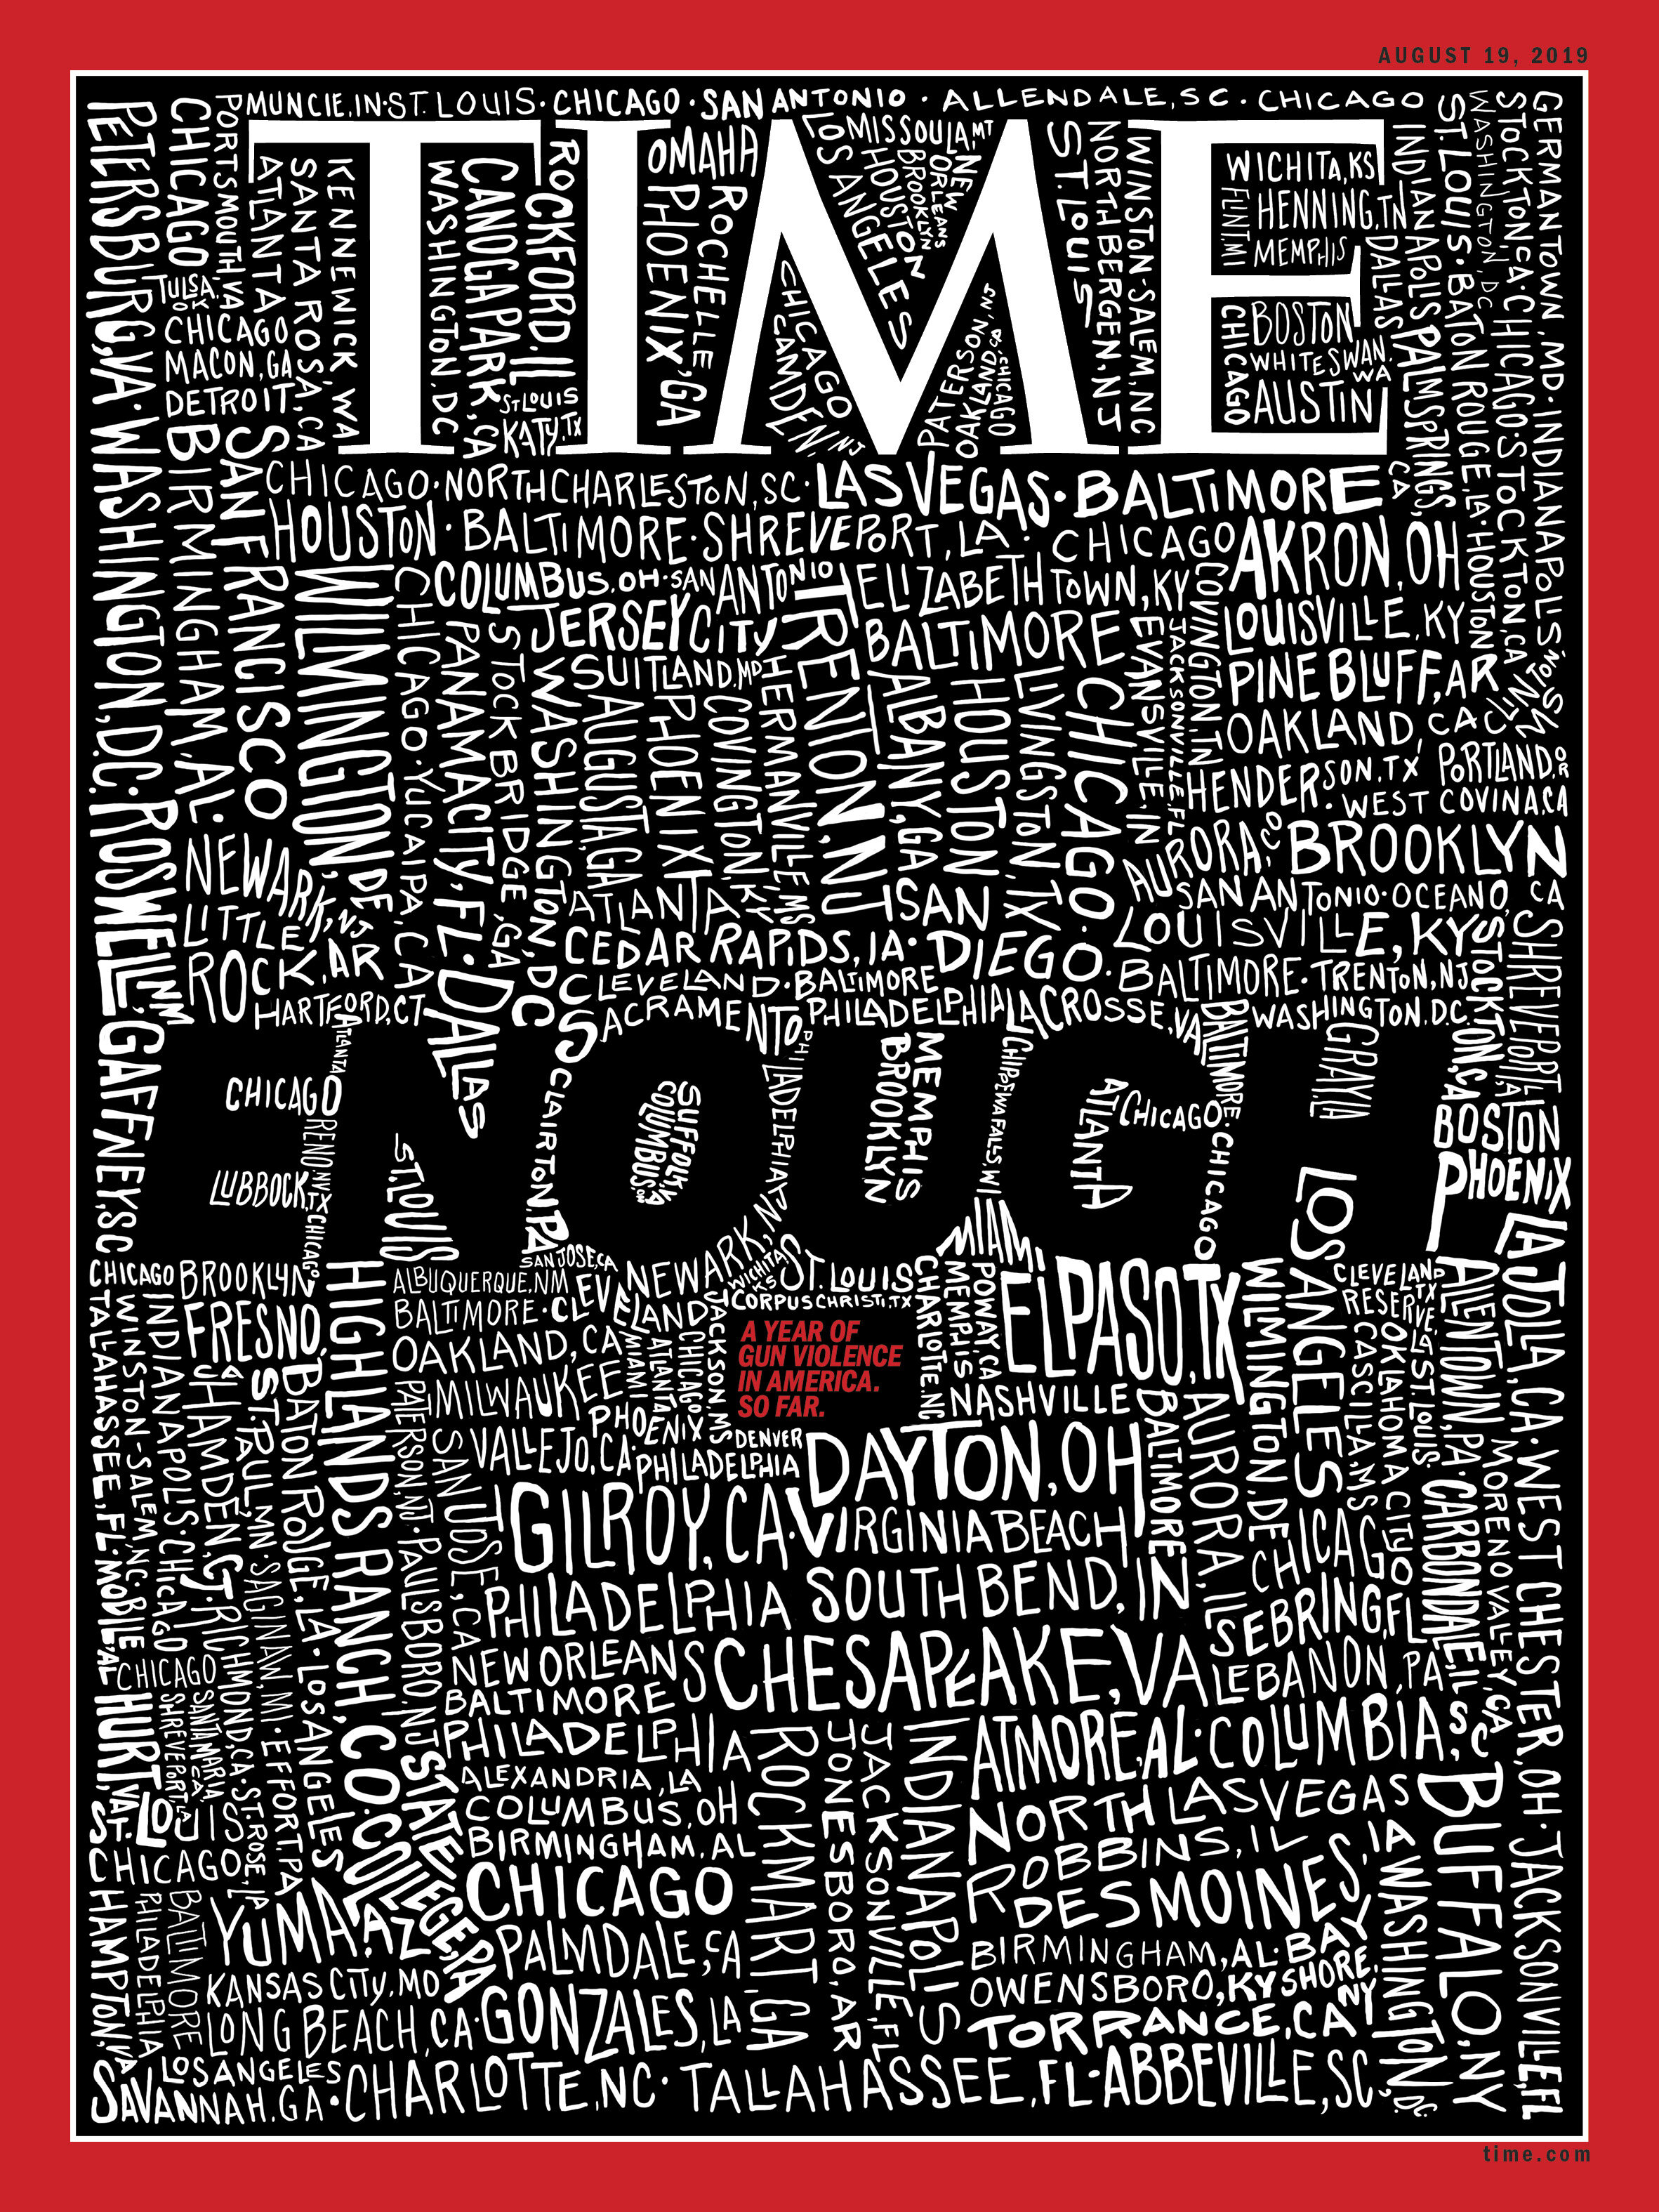 TIME.Shootings.Cover.jpg